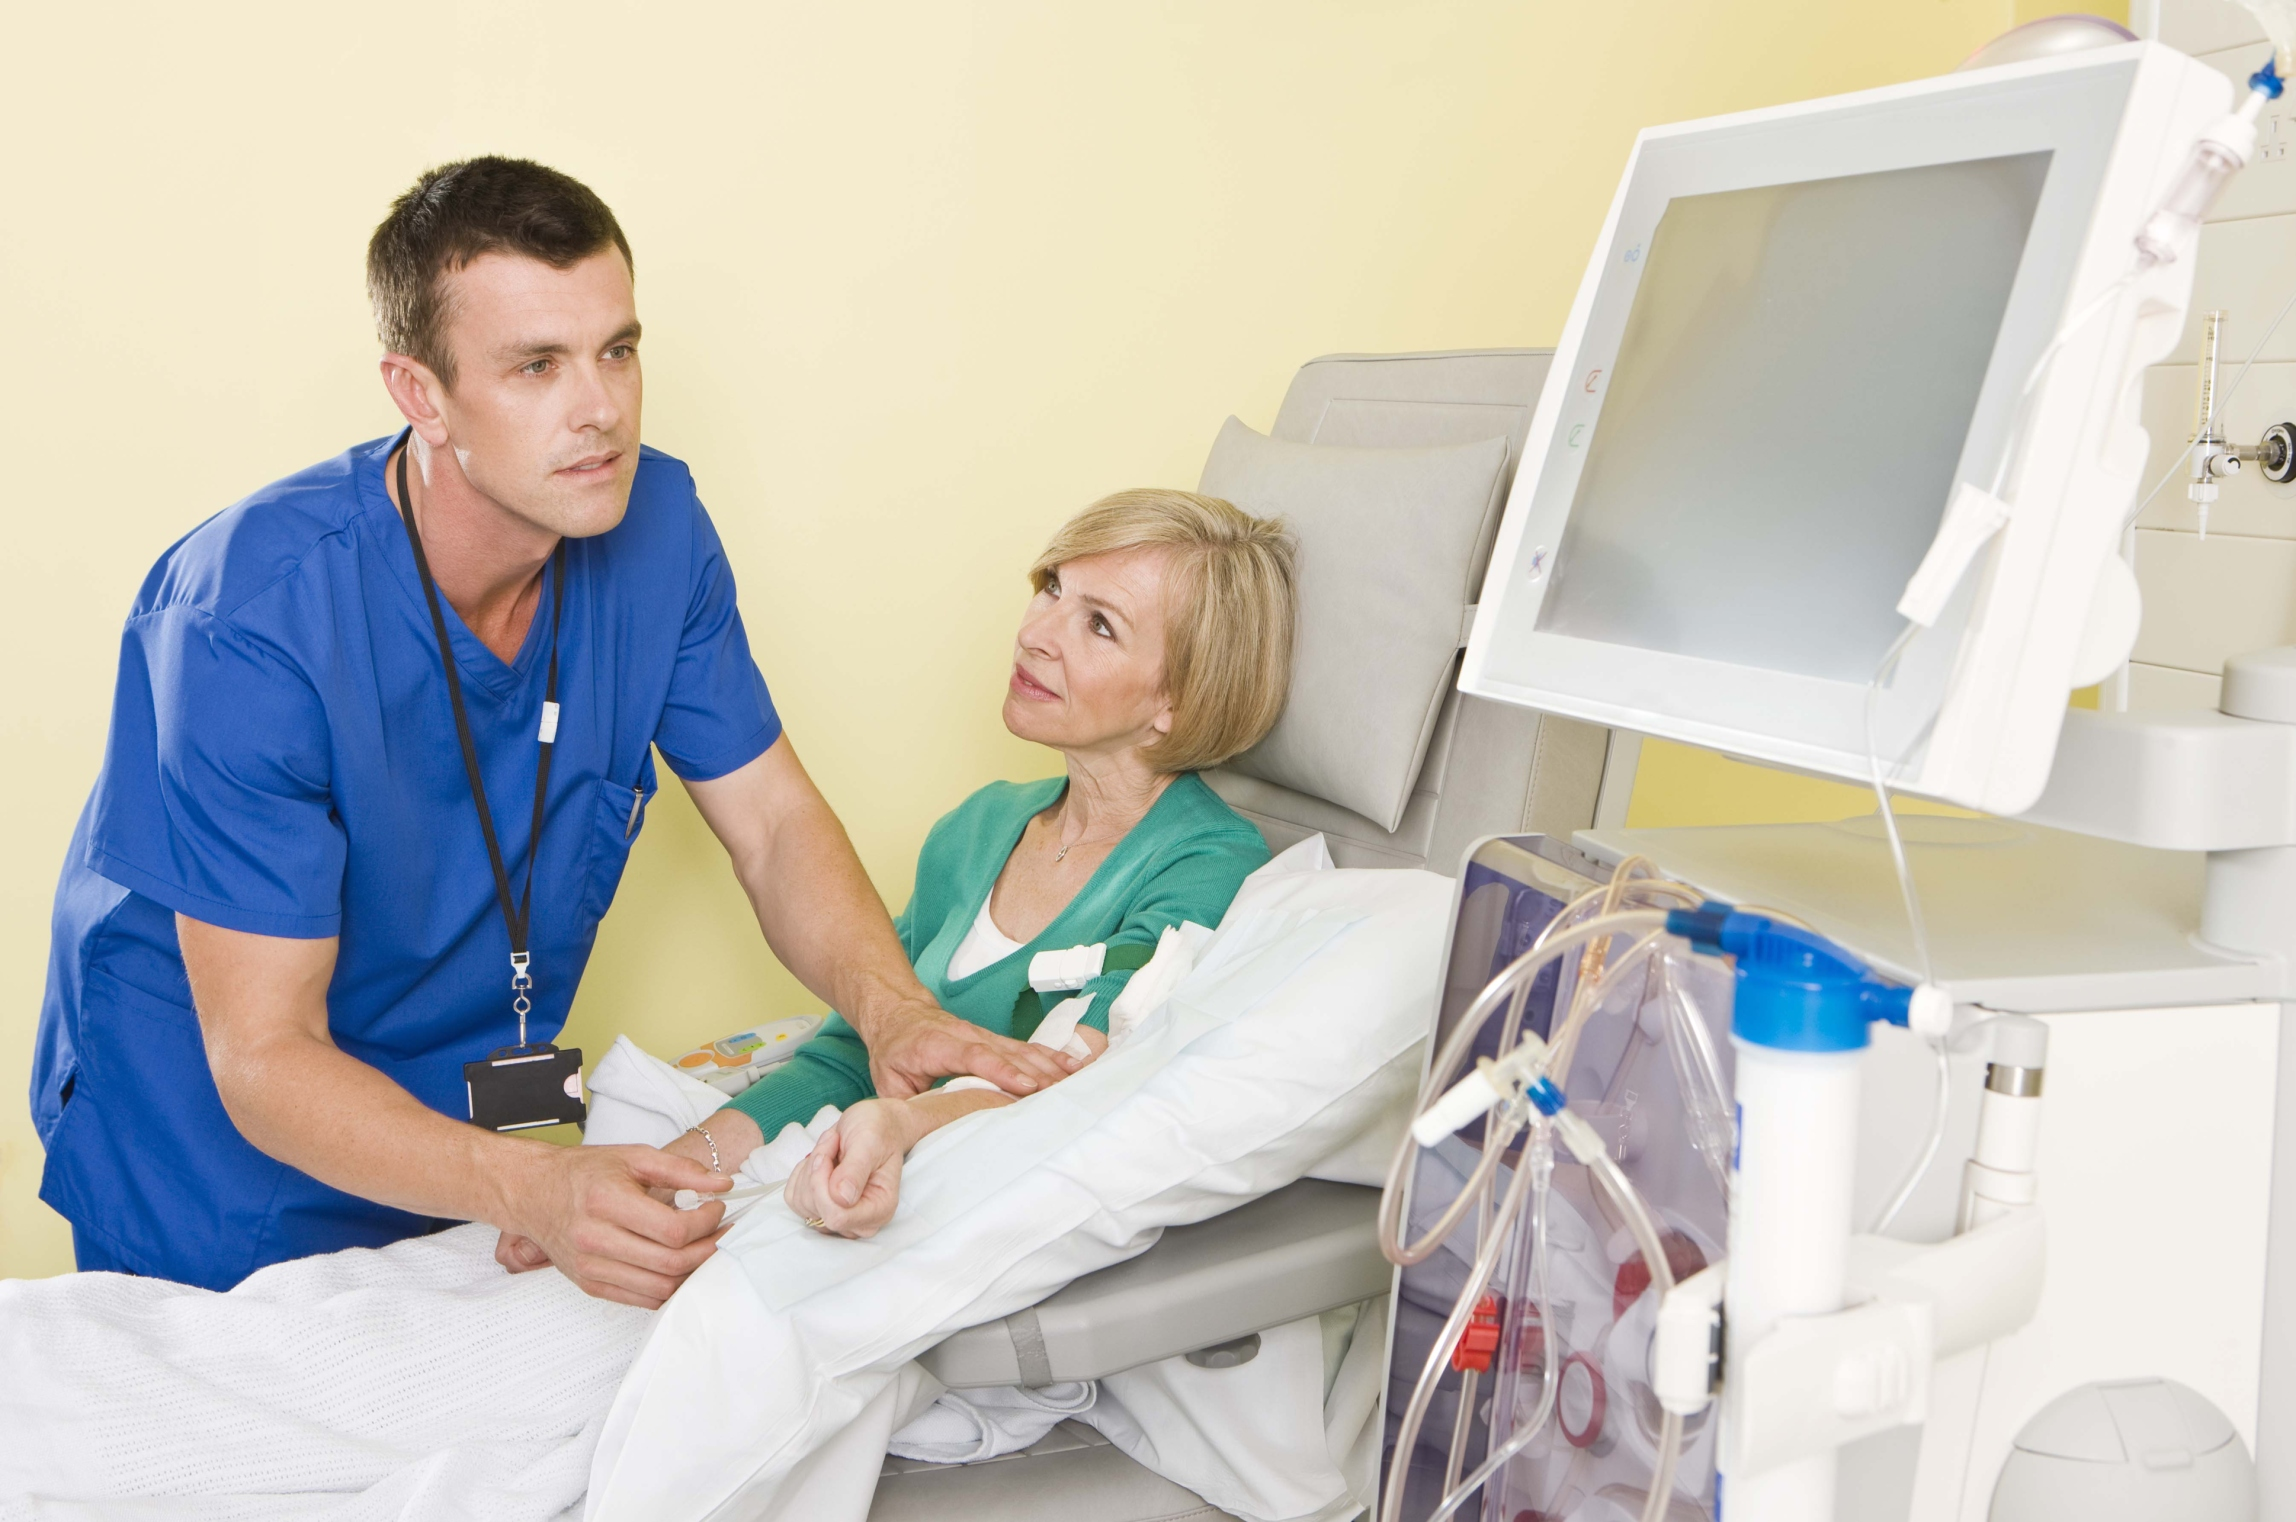 How to Troubleshoot a Dialysis Machine | Healthy Living